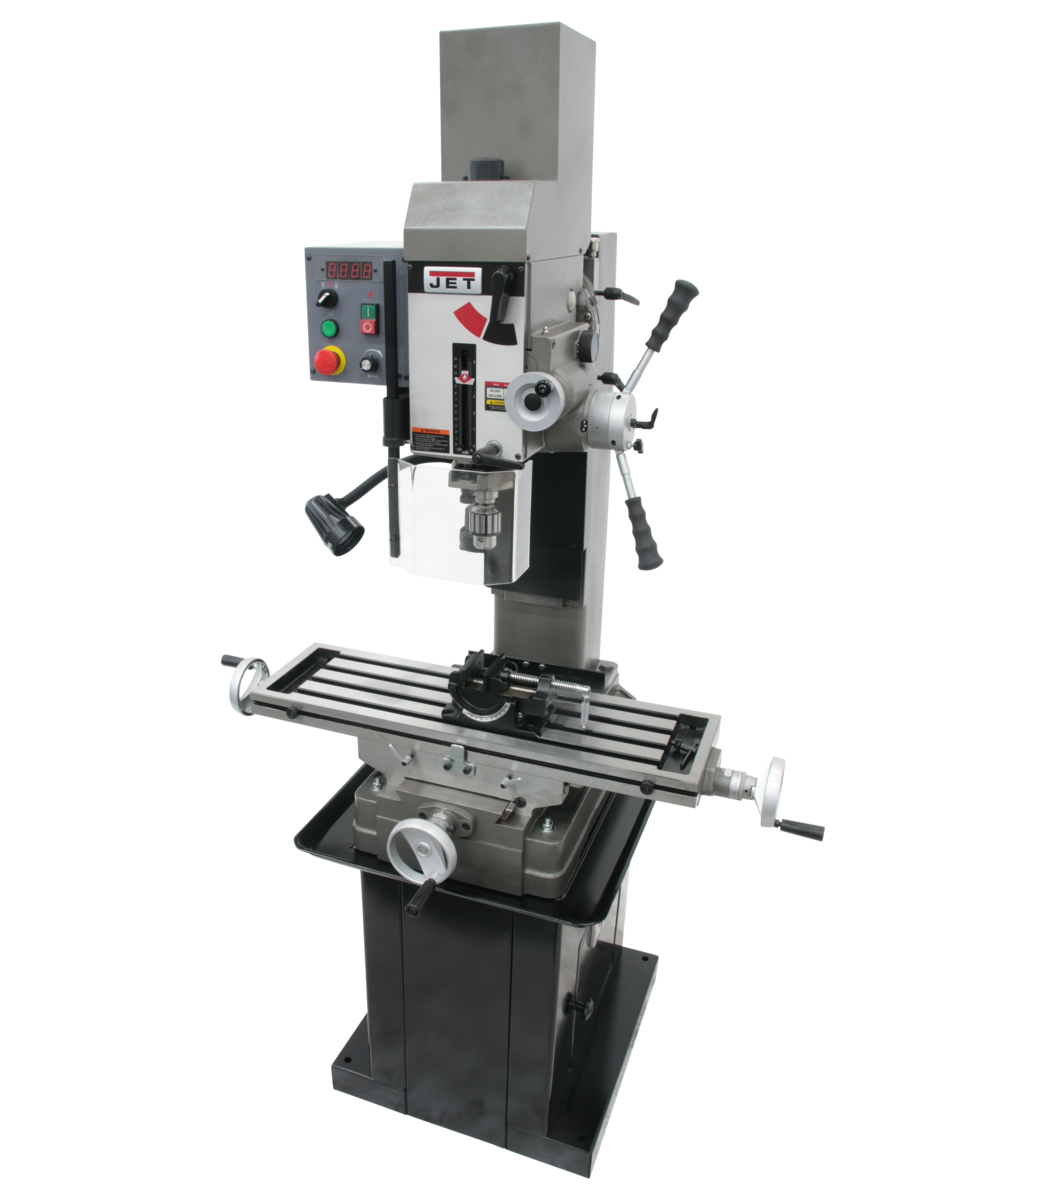 JMD-45VSPFT Variable Speed Geared Head Square Column Mill/Drill with Power Downfeed & Newall DP700 2